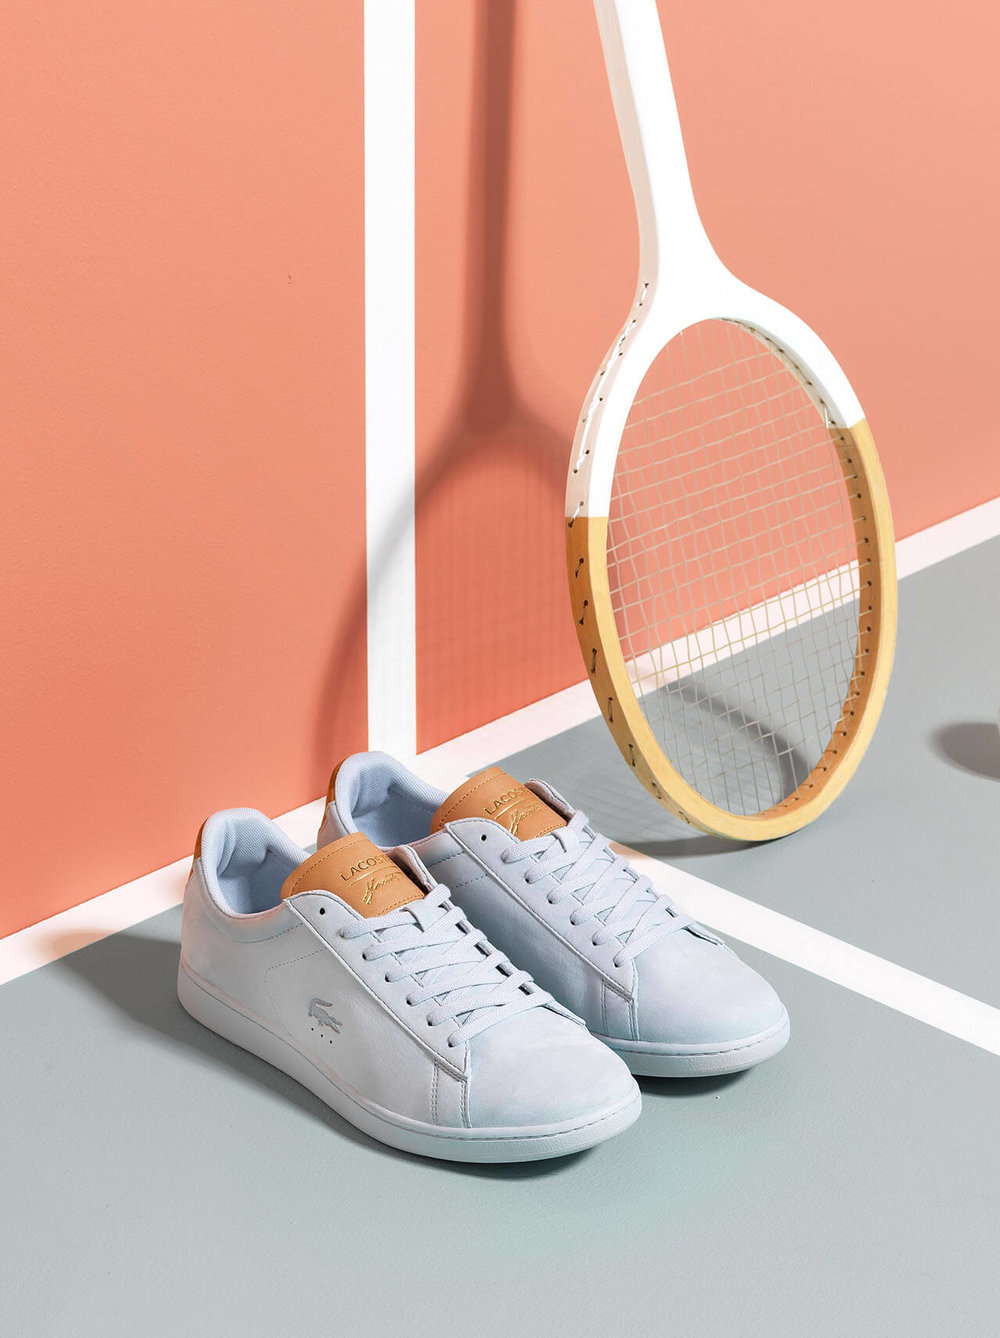 Lacoste Quickstrike<strong>Read More</strong>